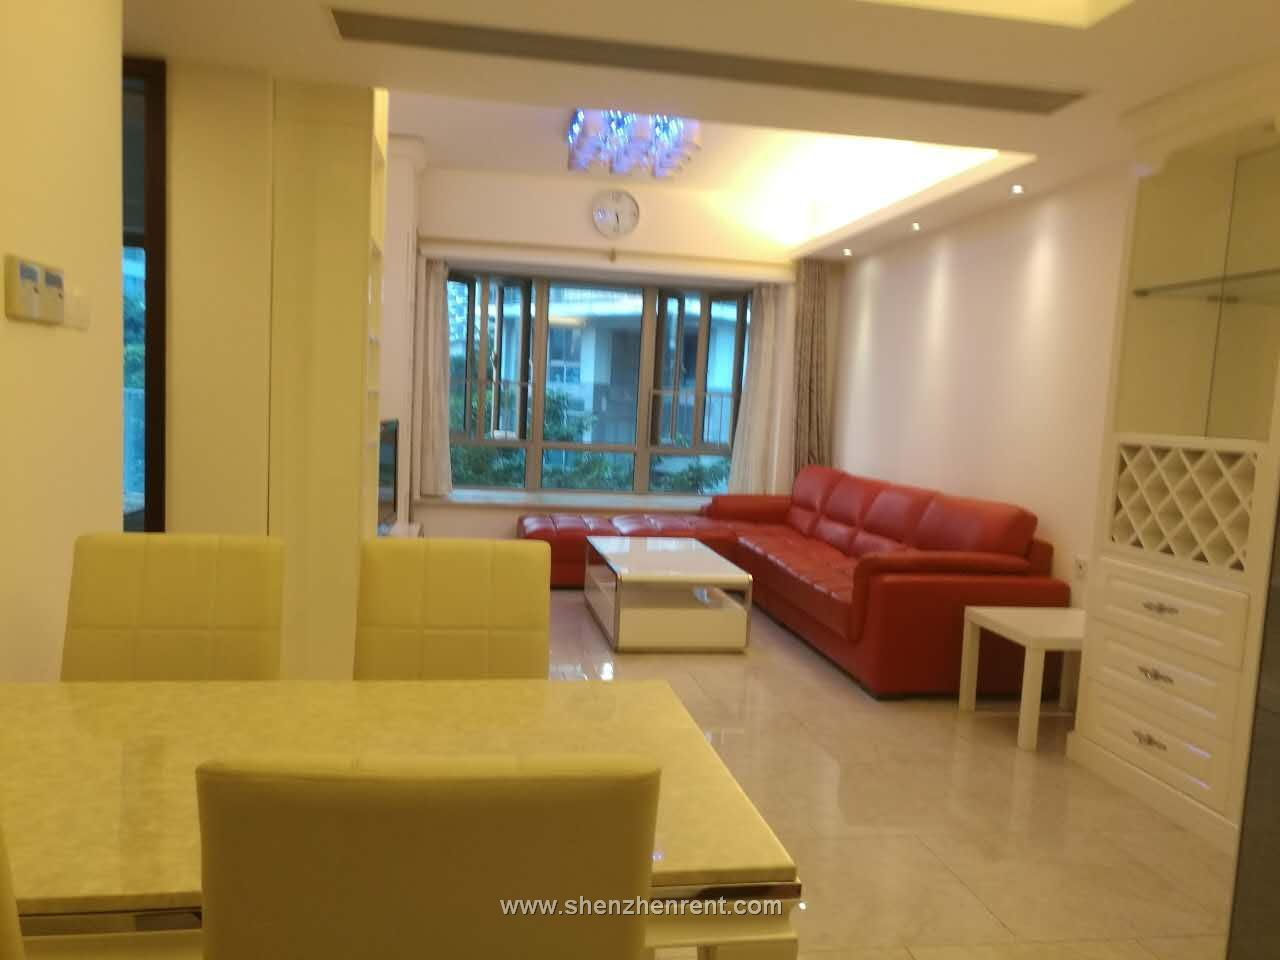 Cozy 2 bedrooms apartment in shekou mont orchid for rent